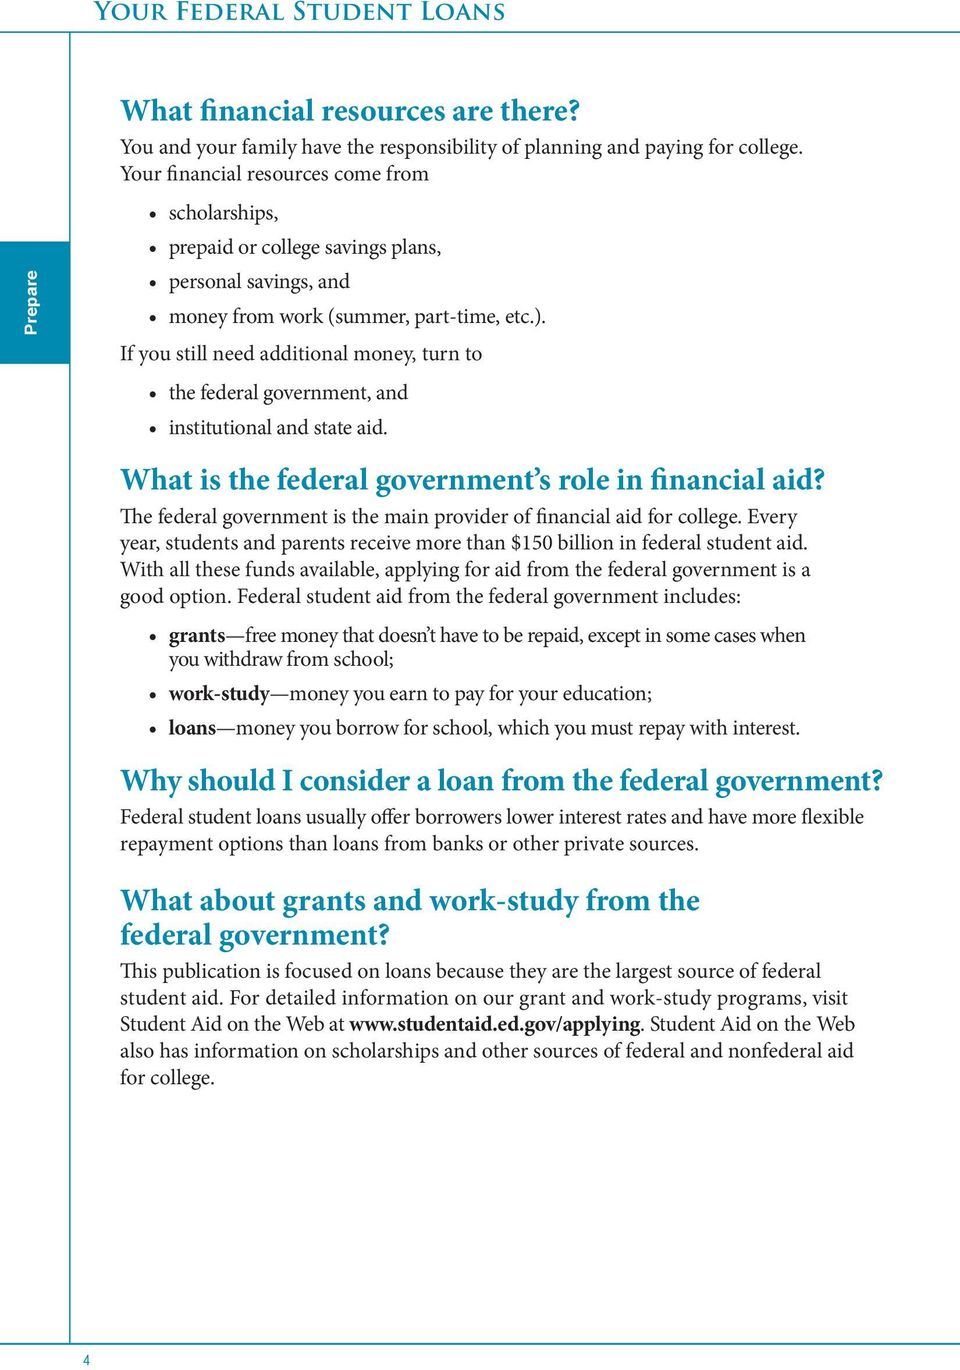 If you still need additional money, turn to the federal government, and institutional and state aid. What is the federal government s role in financial aid?